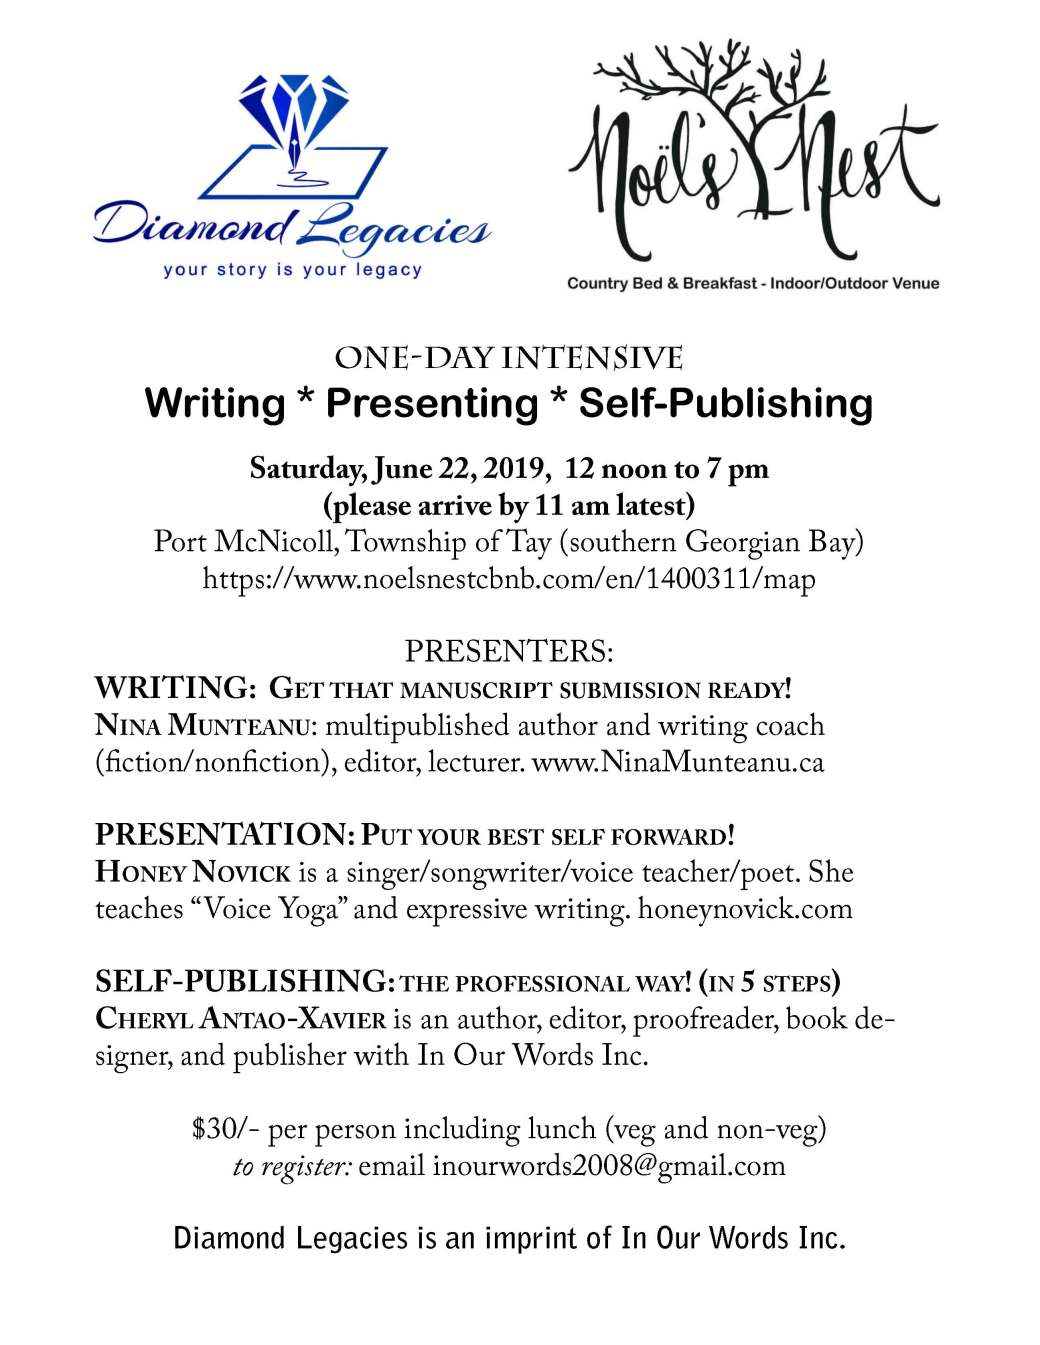 Writing intensive June 22, 2019